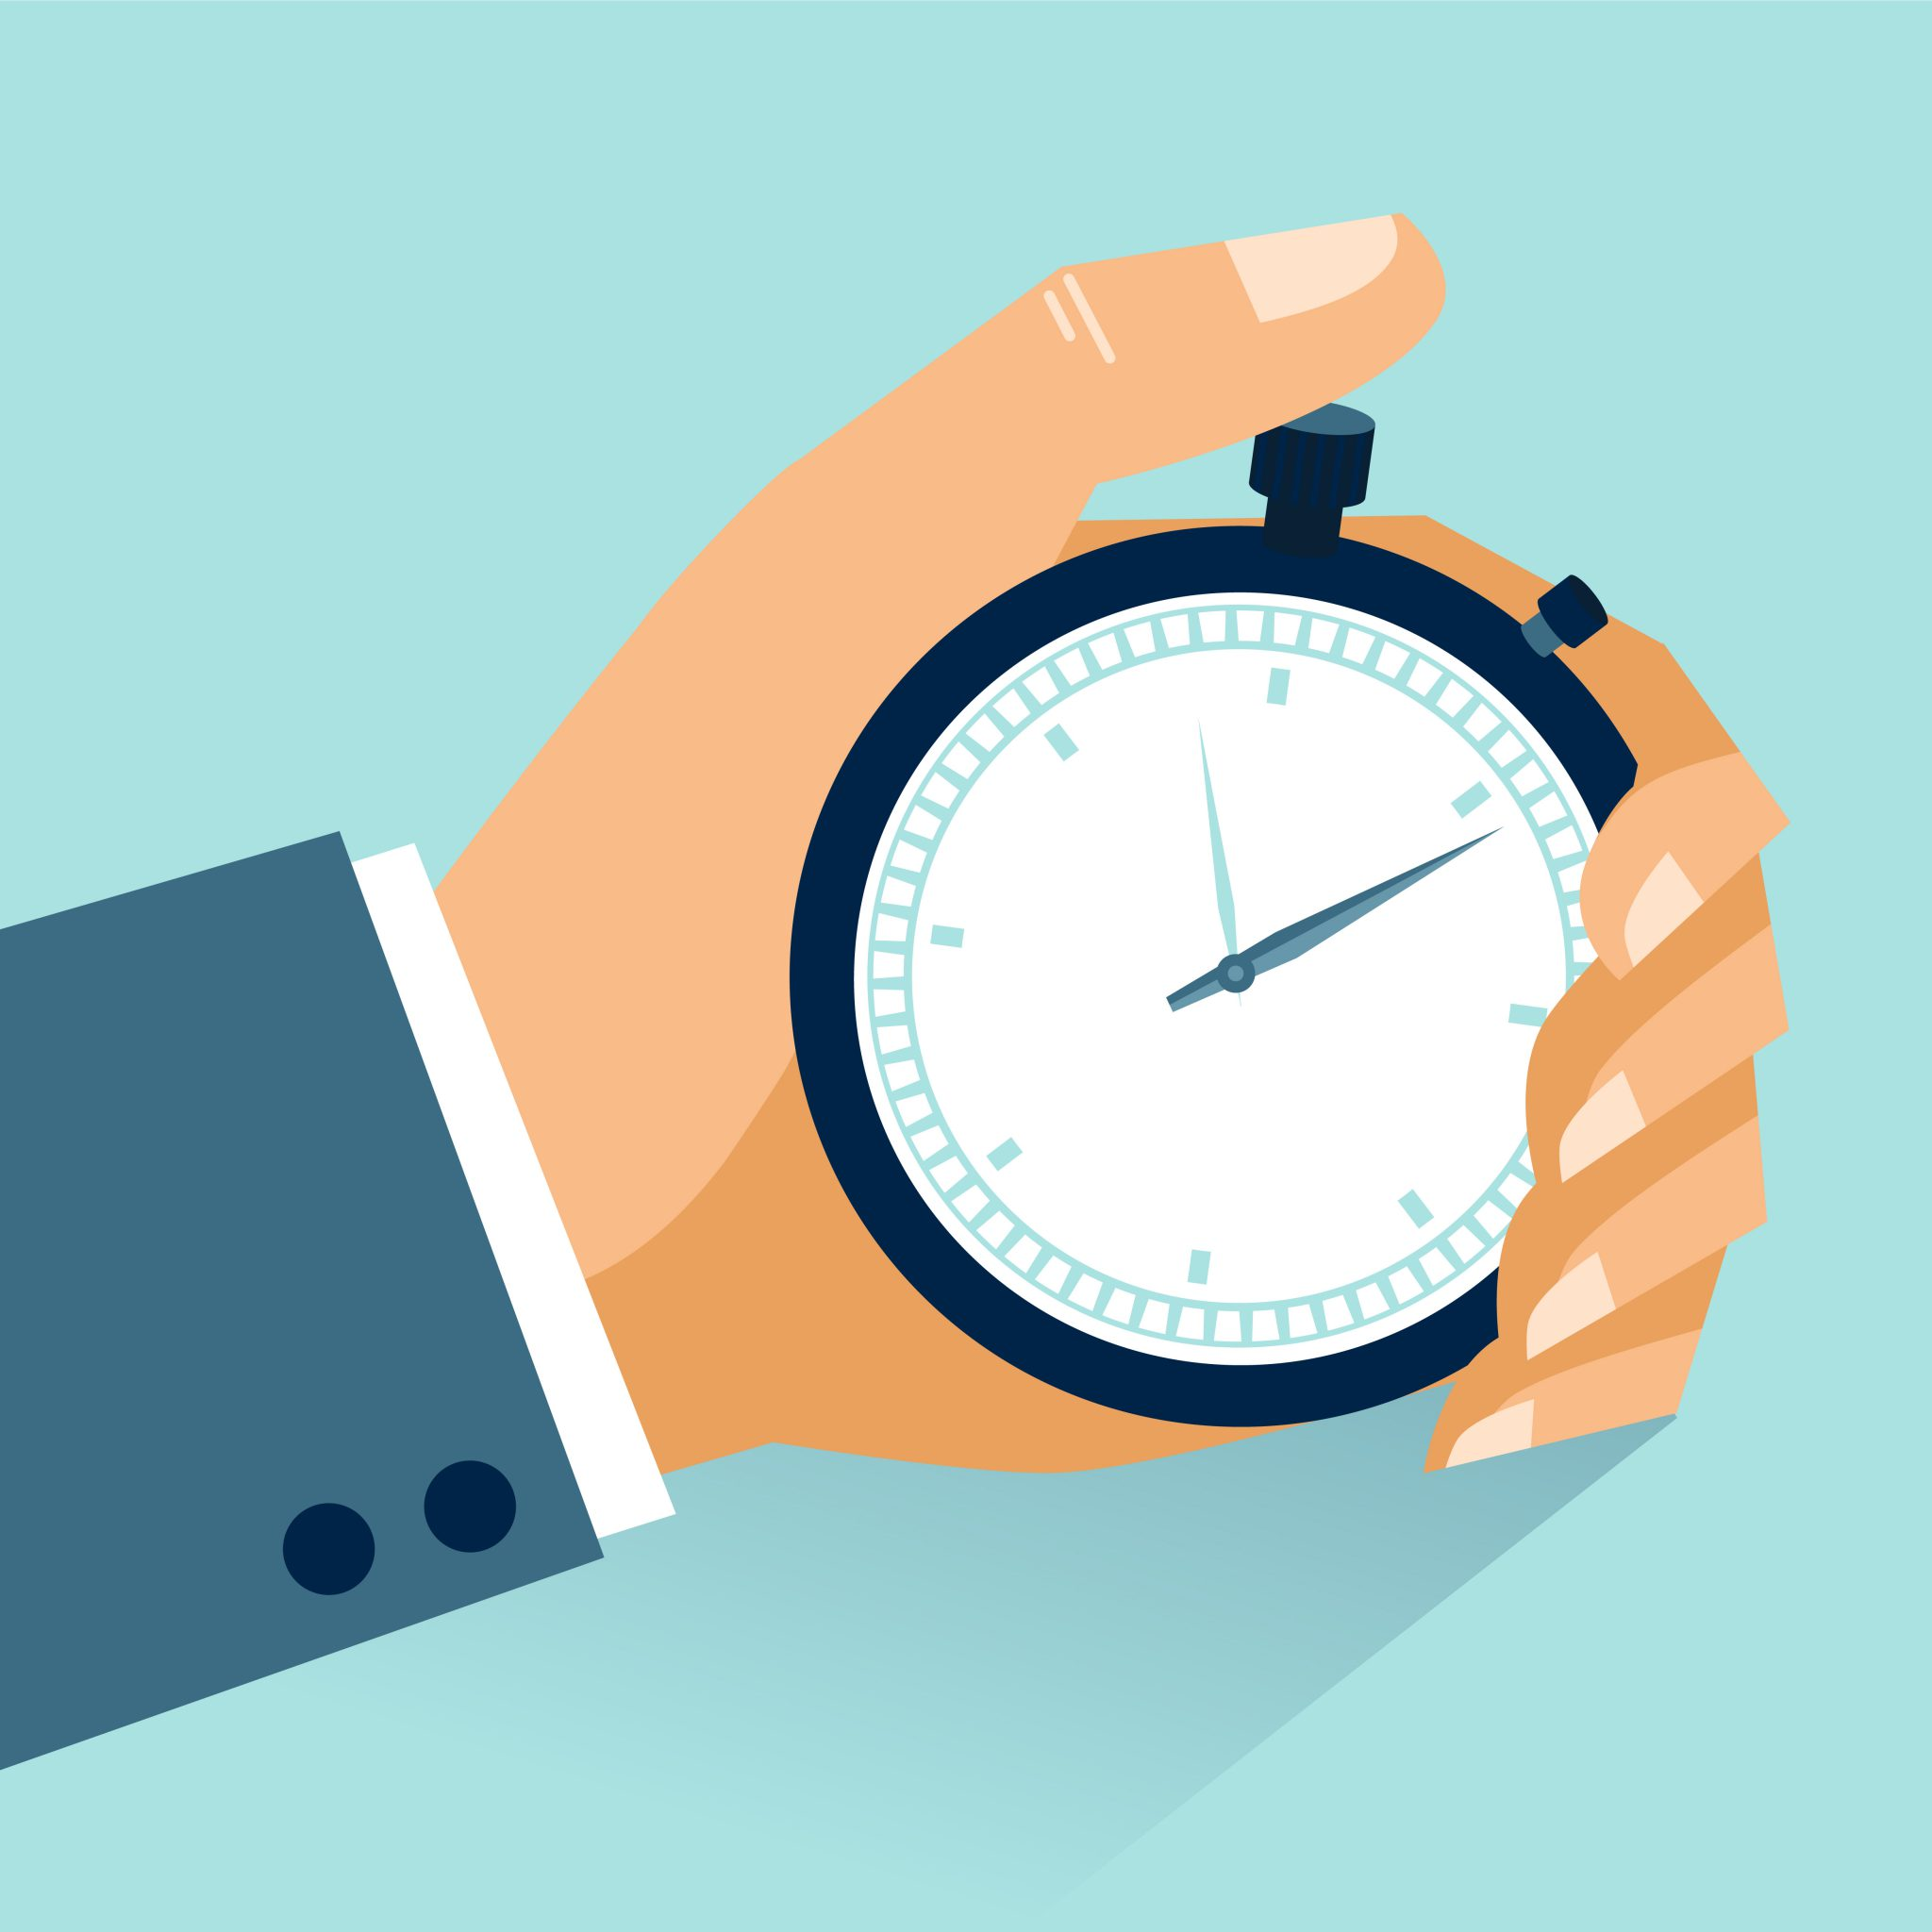 What is the Best Employee Engagement Survey Frequency?